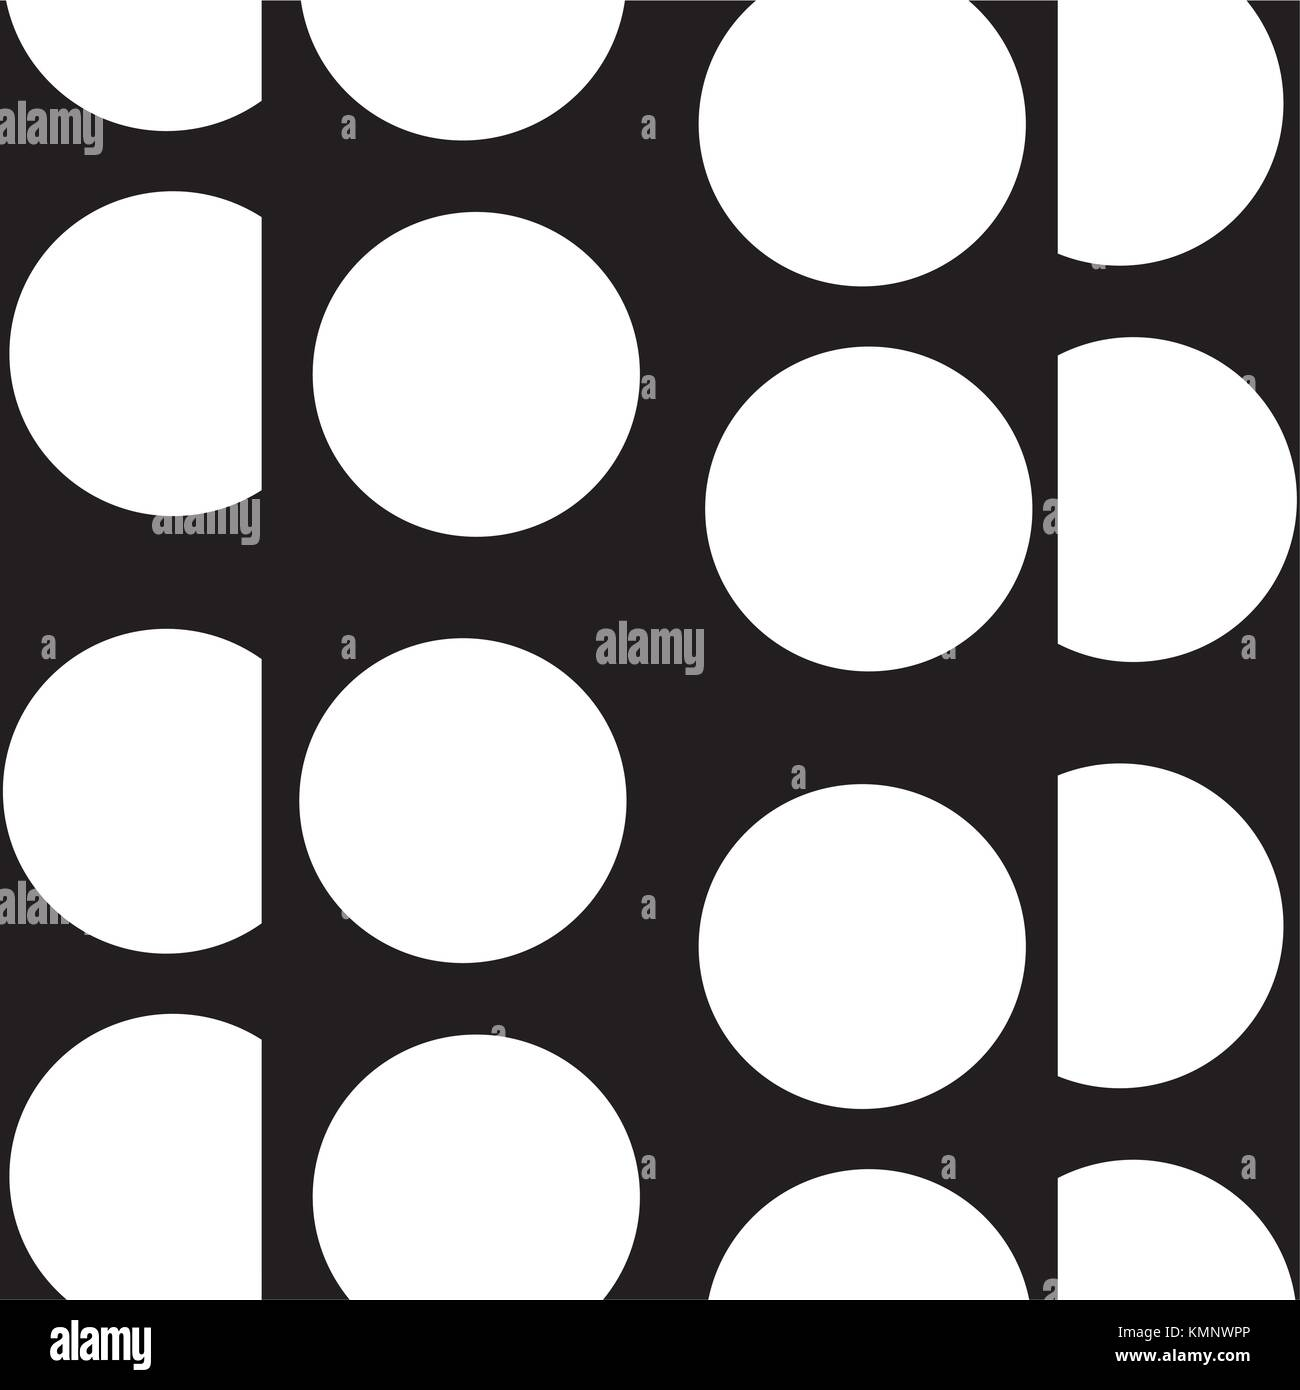 contour circle and triangle memphis style background - Stock Image